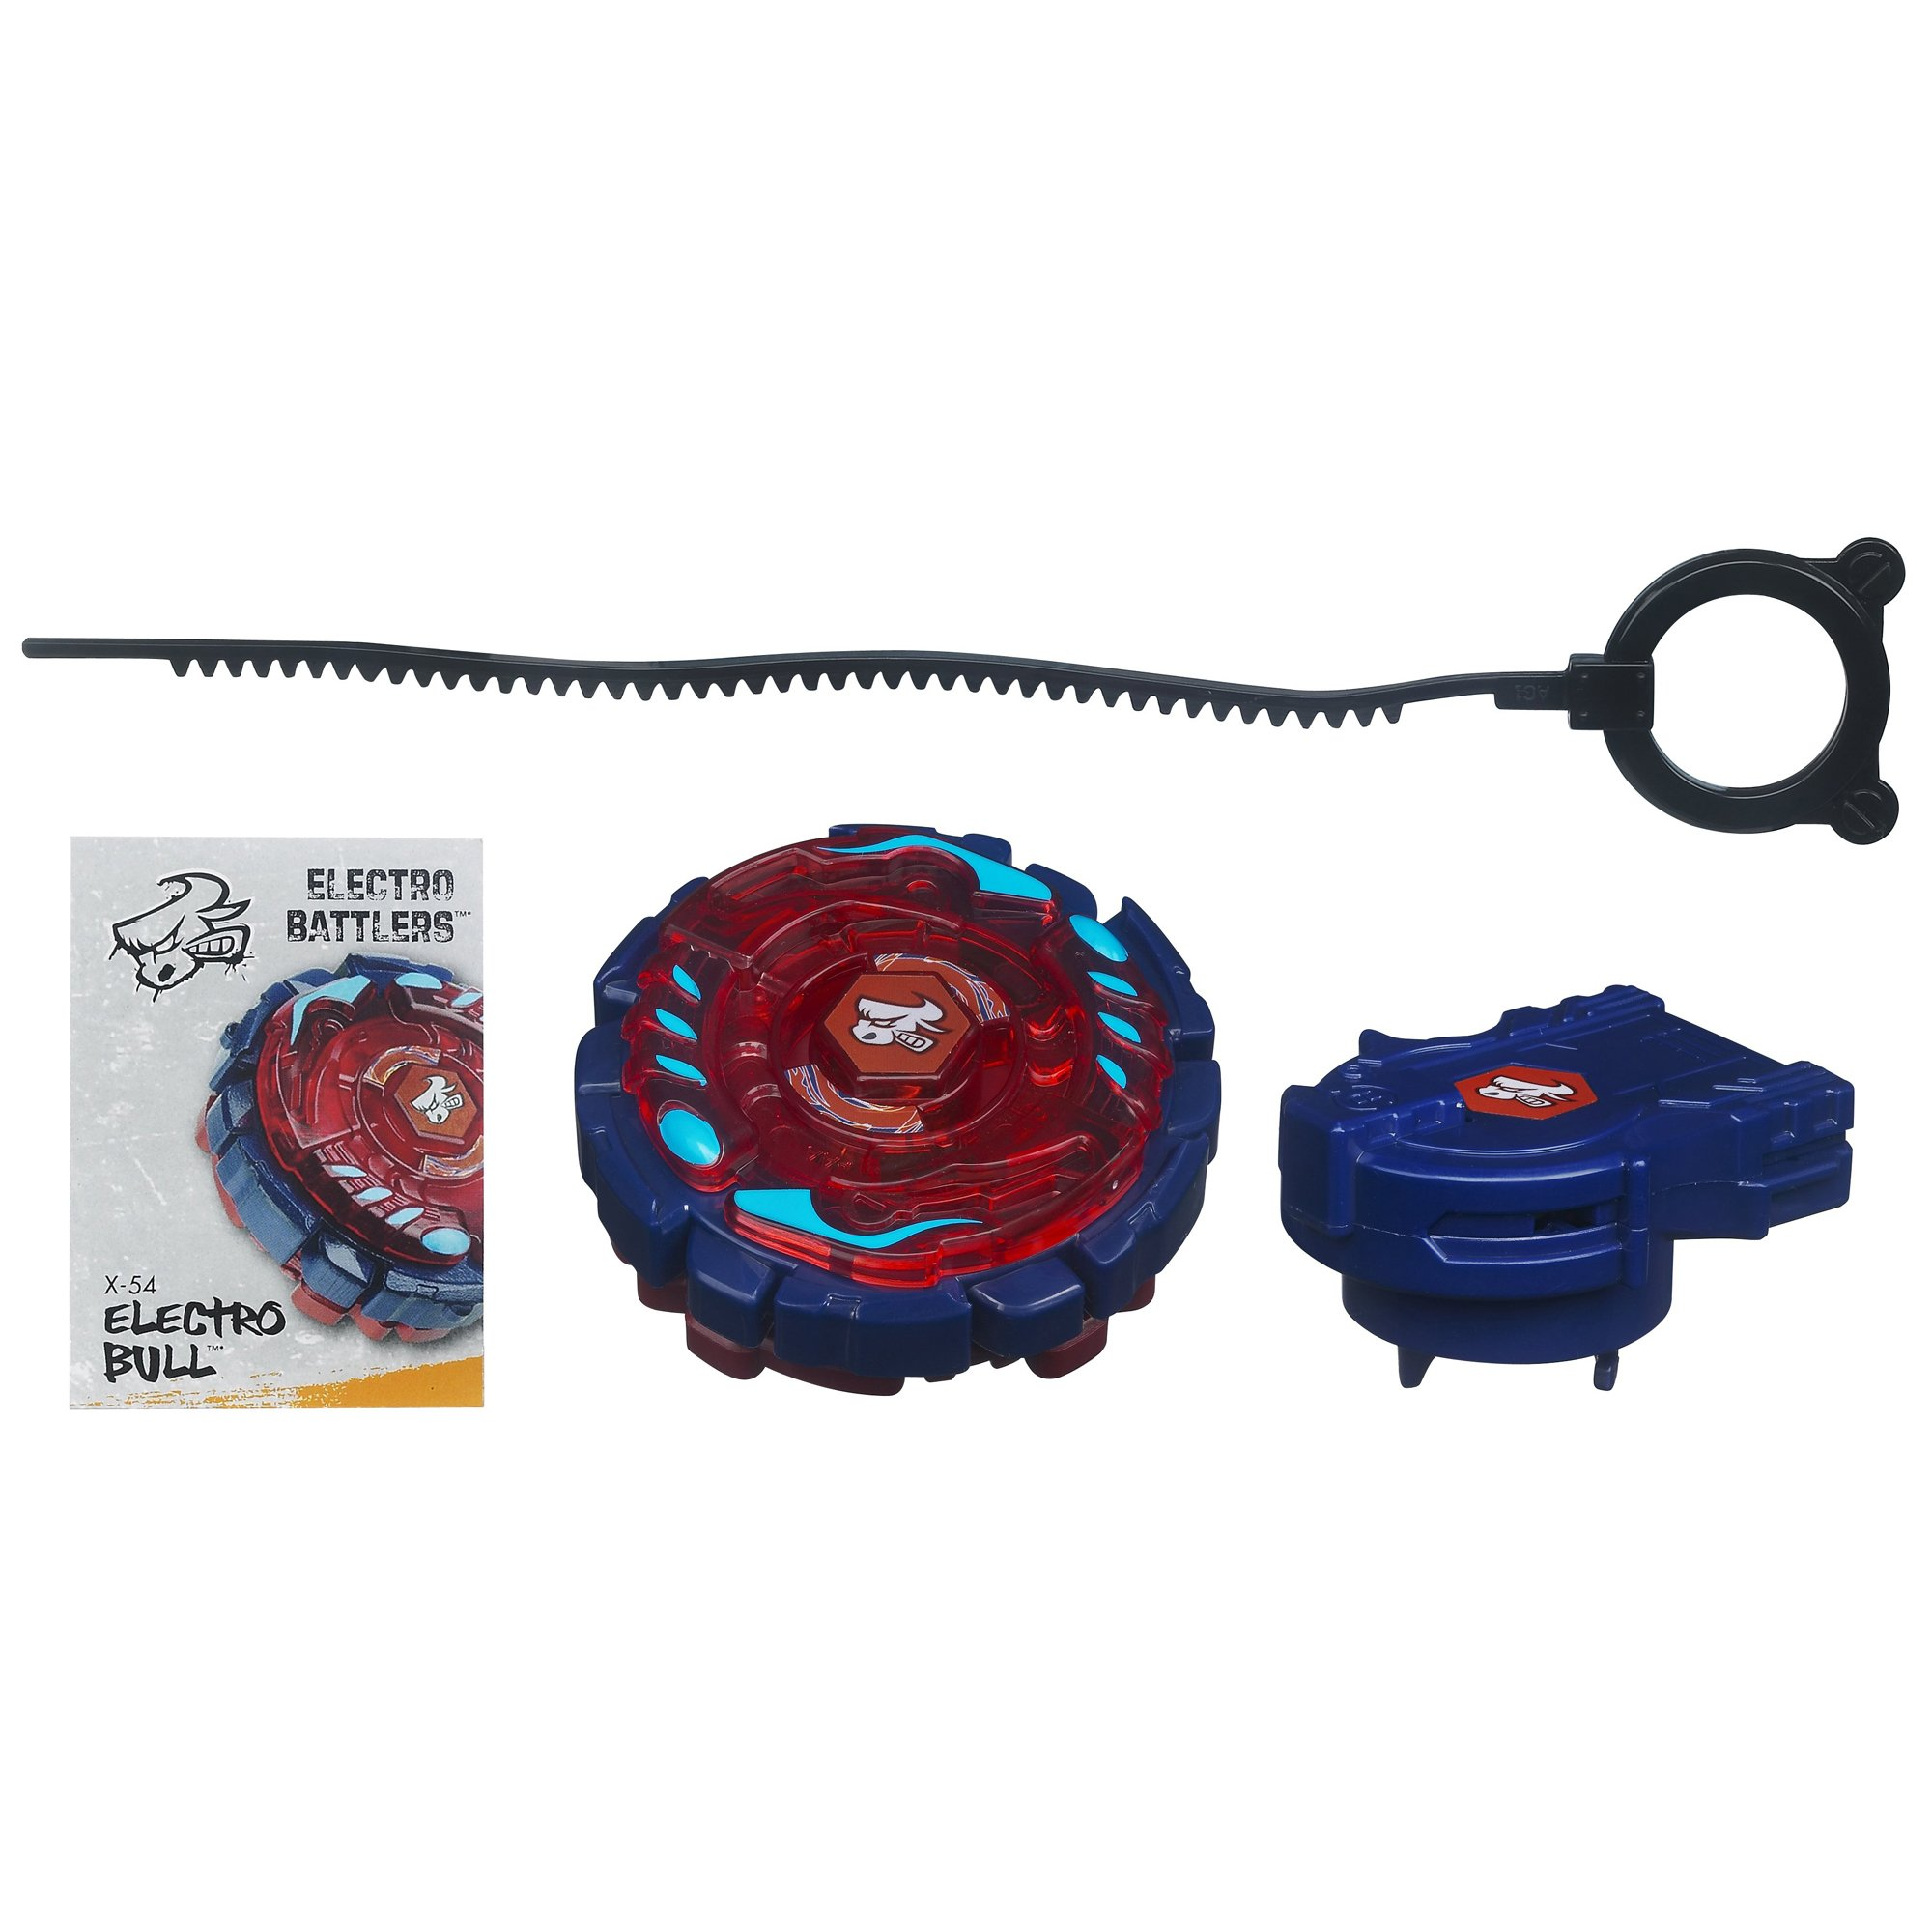 Beyblade Extreme Top System Electro Battlers X-54 Electro Bull Top